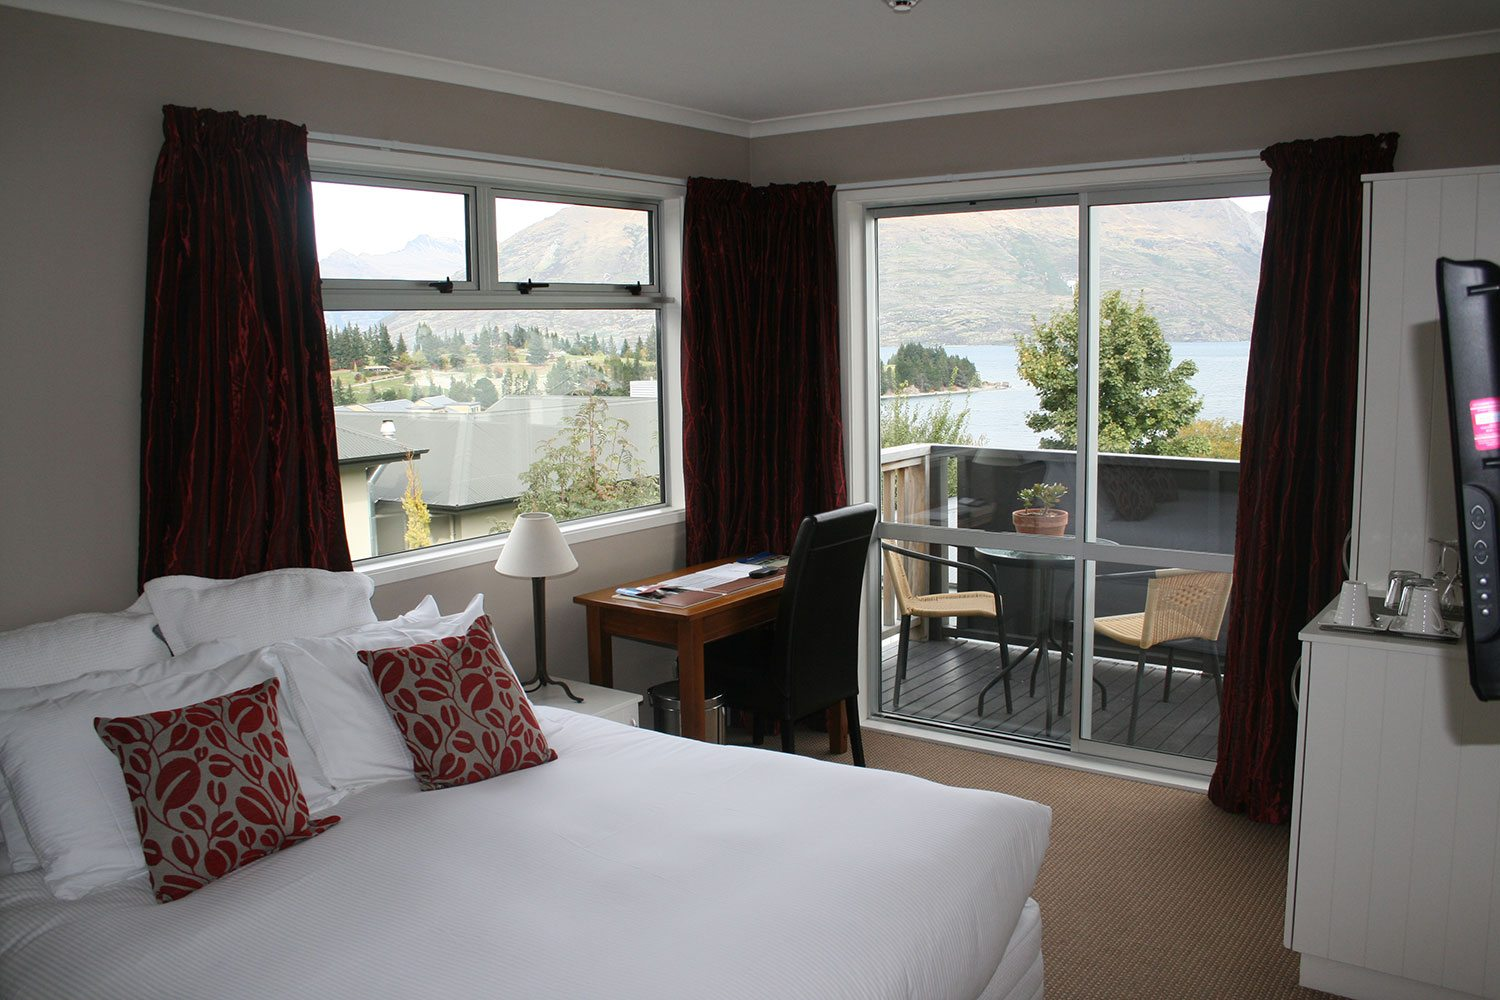 Chalet Queenstown  Silver Fern Holidays. Royal Living Apartments Vienna. Bloomfield House. Devigarh Hotel. Global Backpackers Waterfront Hostel. Fiesta Inn Chihuahua. Catalonia Port Hotel. Simi Hotel. Dovecote Grange Guest House